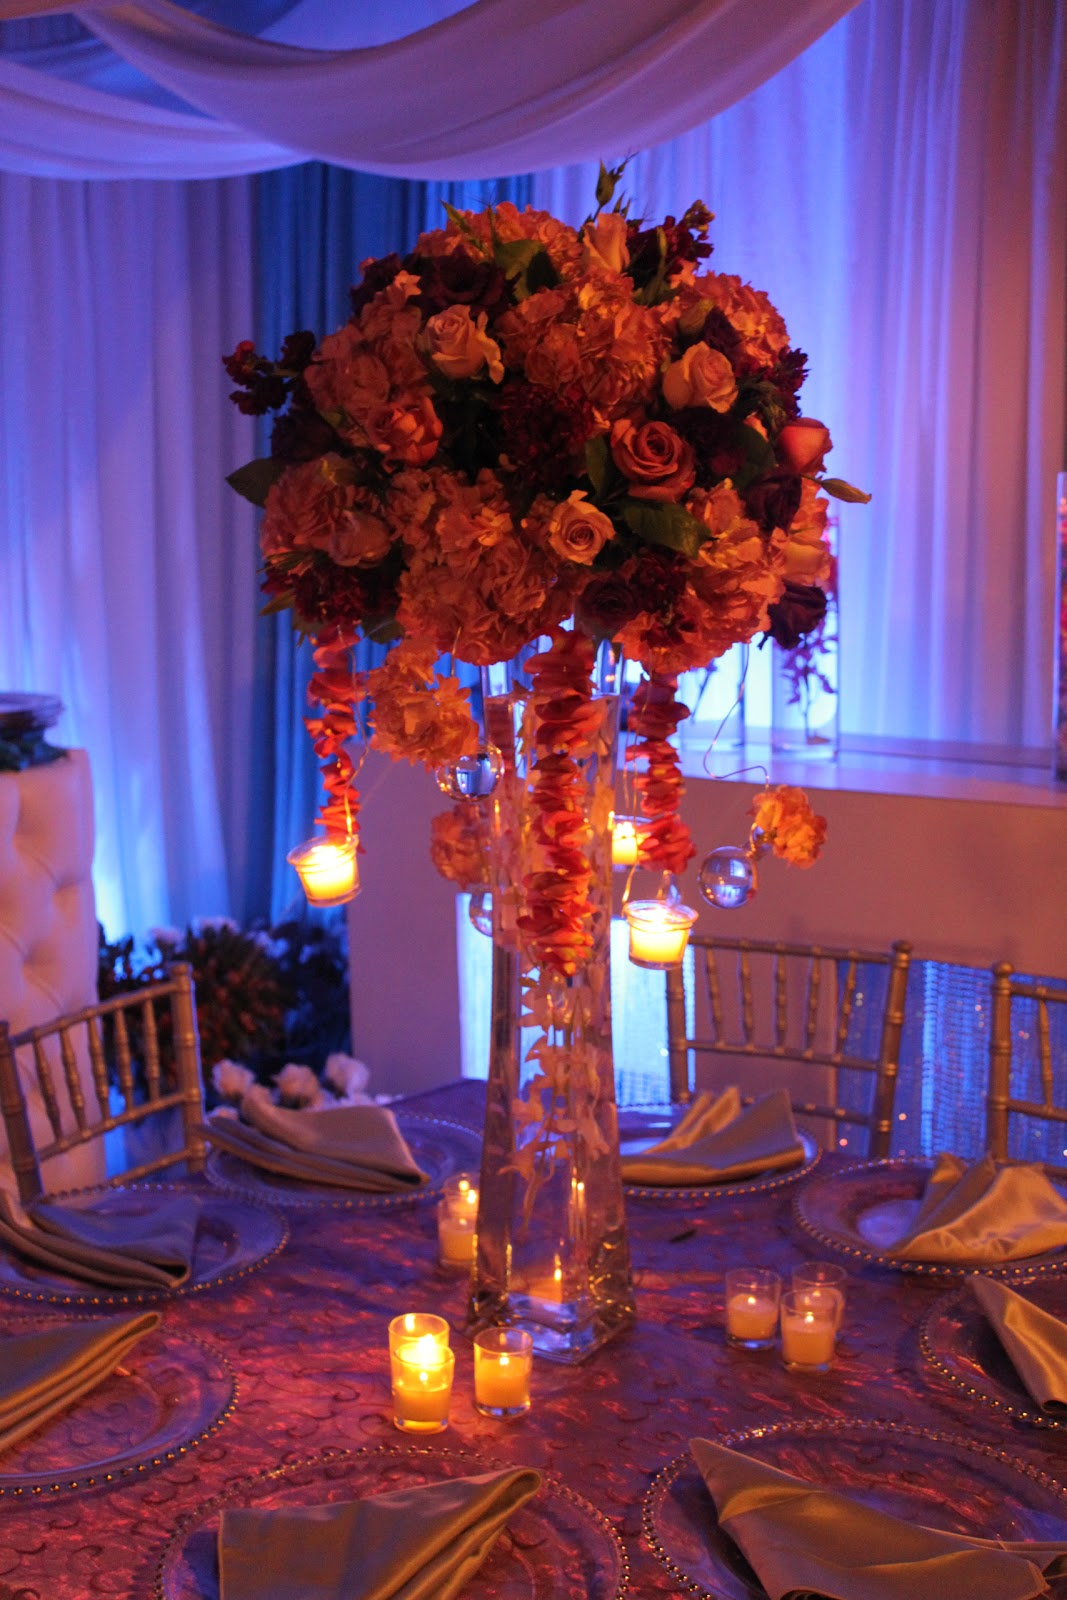 Last week amazing centerpieces